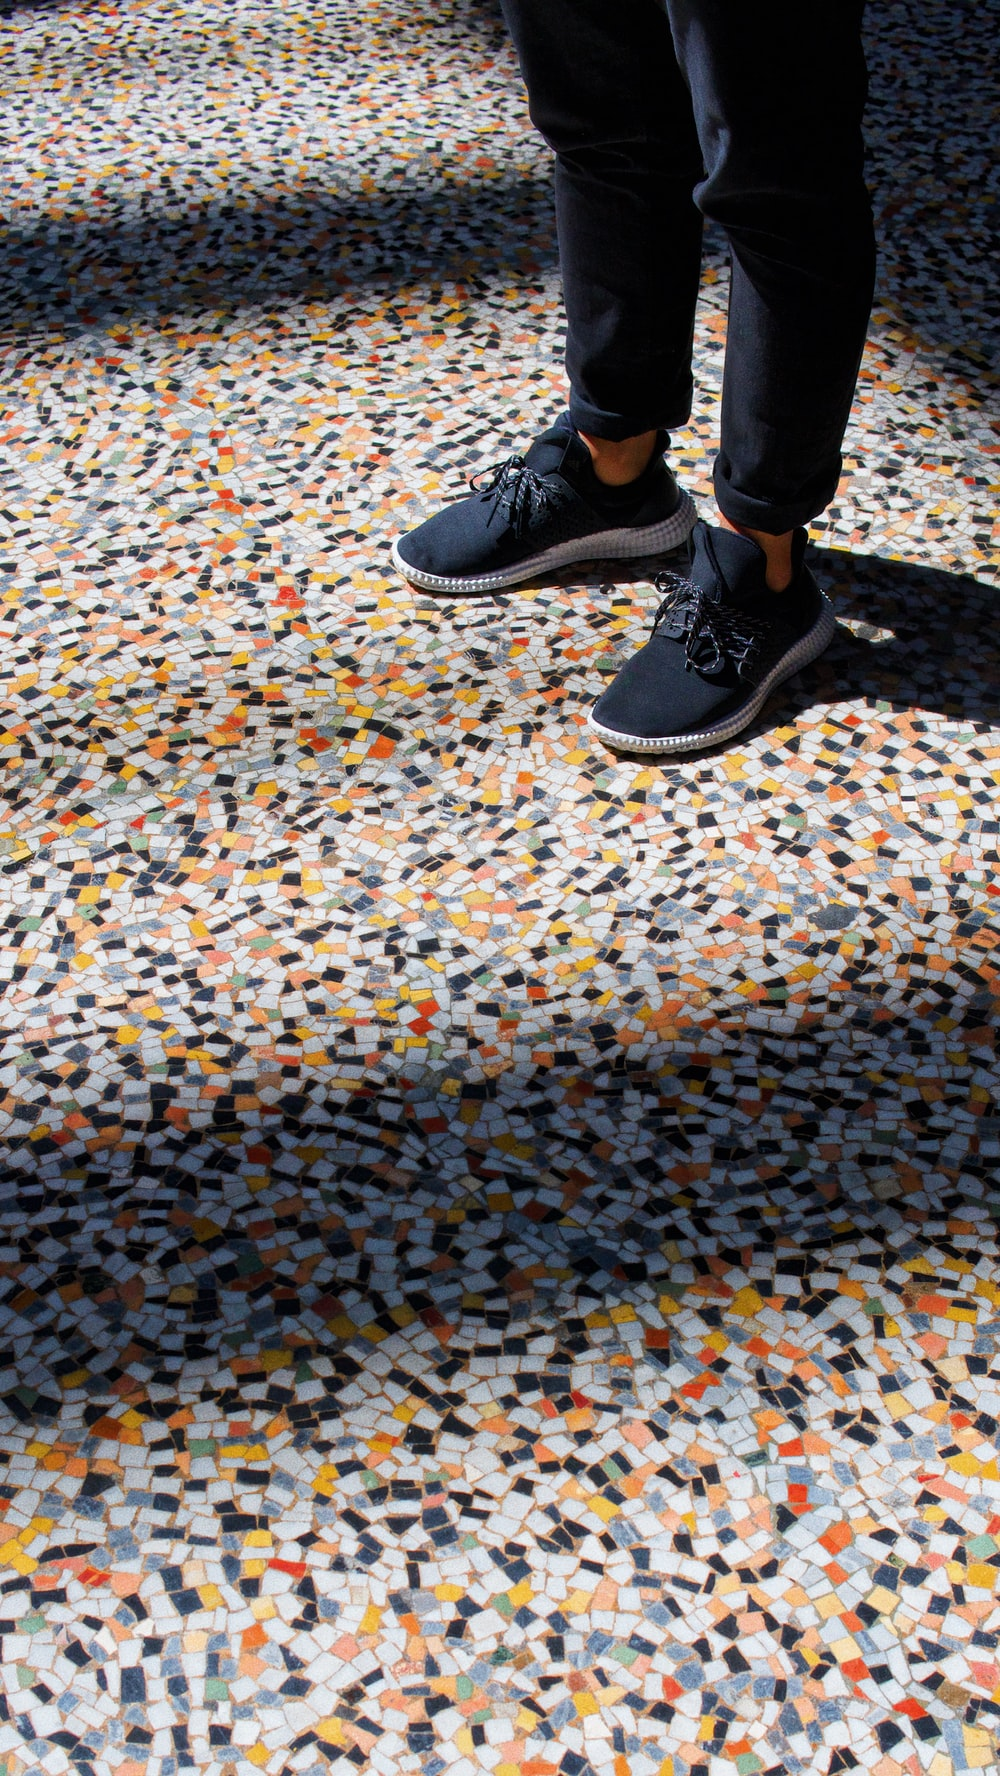 person standing on multicolored tiles